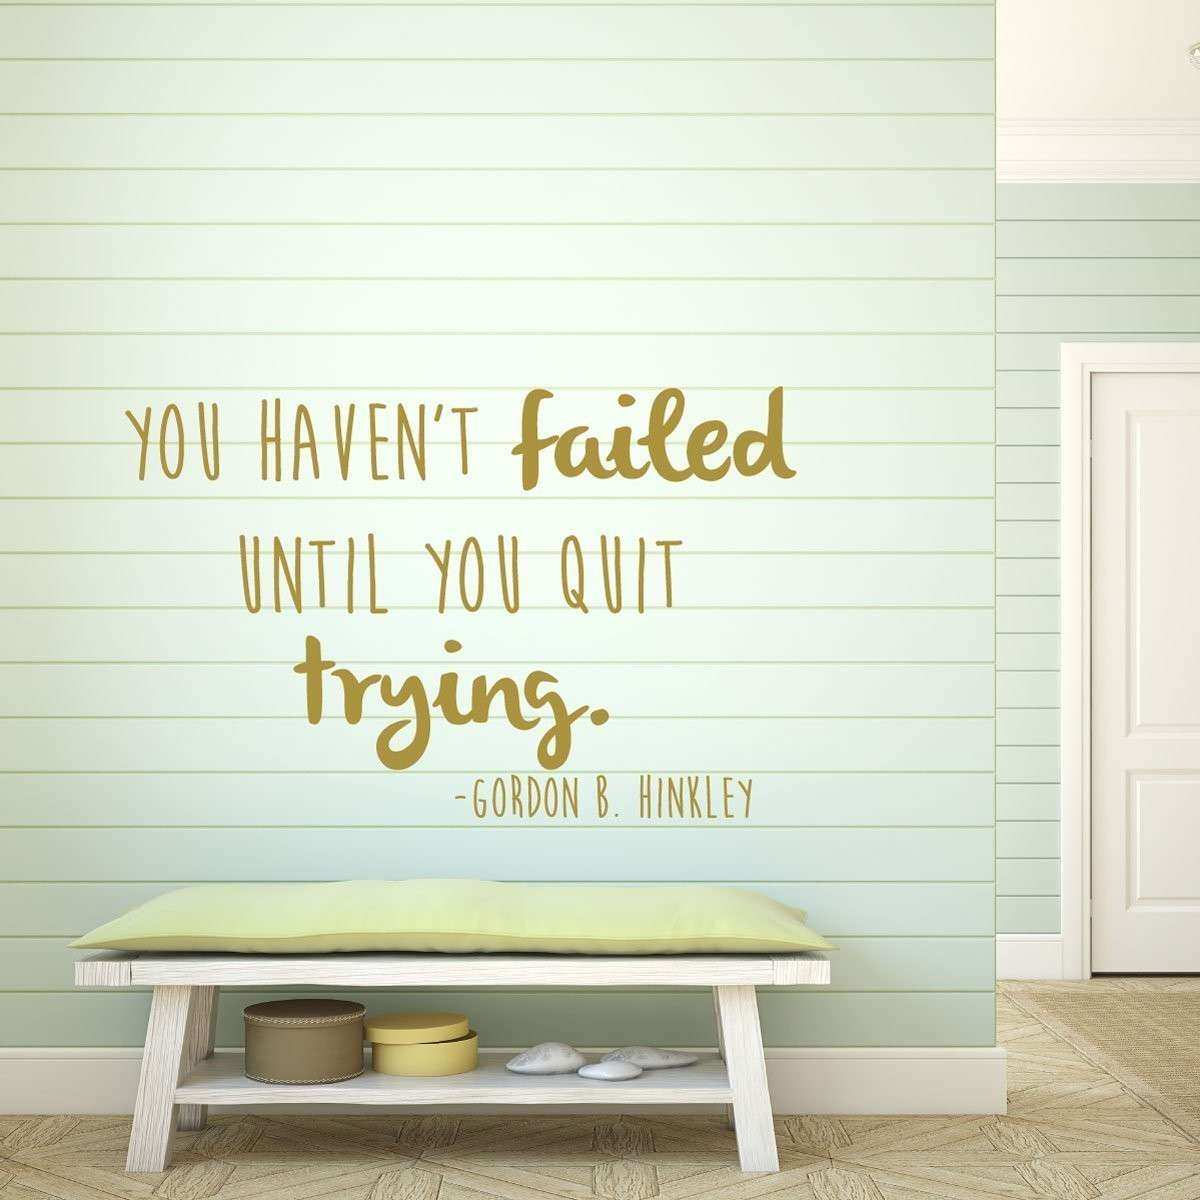 Inspirational Quotes Wall Decals Gordon B Hinckley Home